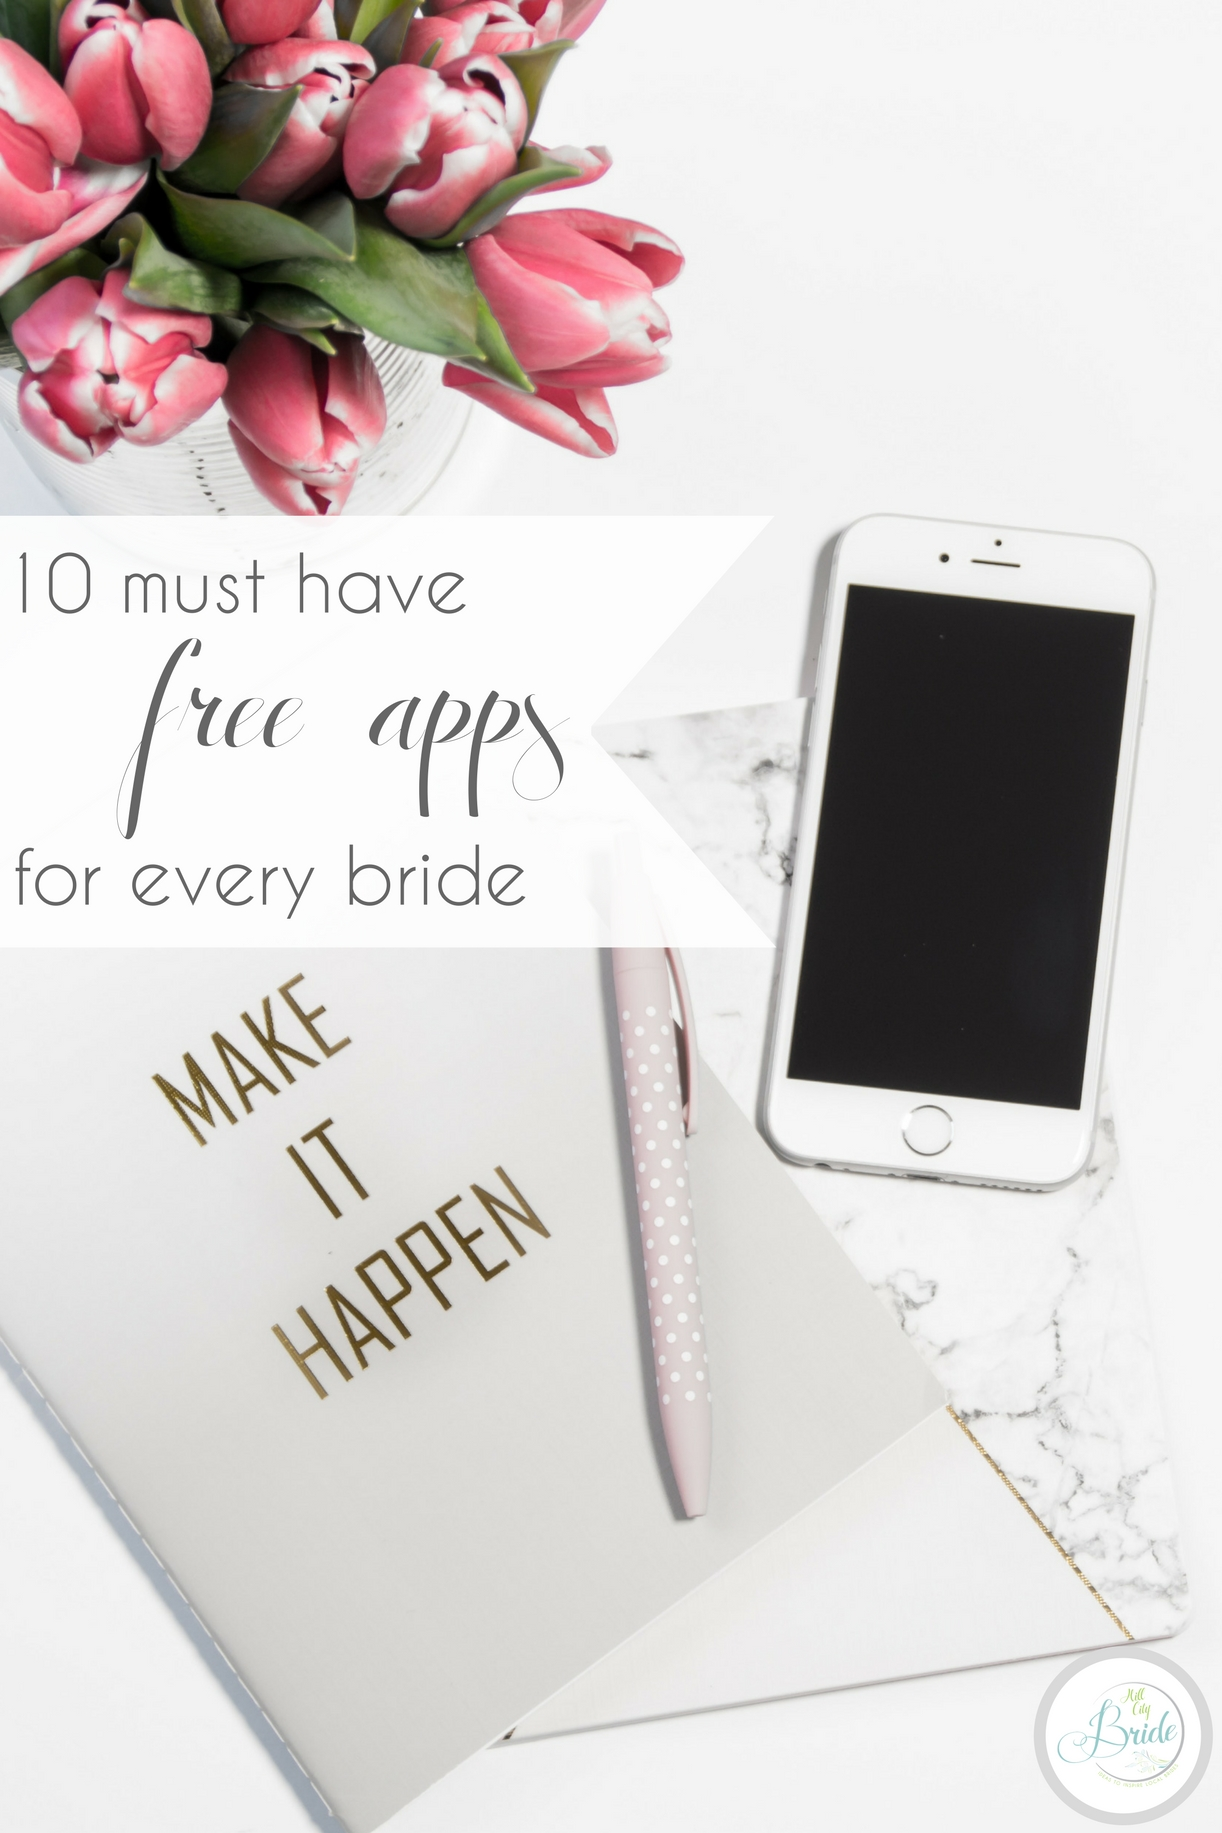 Free Apps for Every Bride Planning a Wedding | Hill City Bride Virginia Wedding Blog